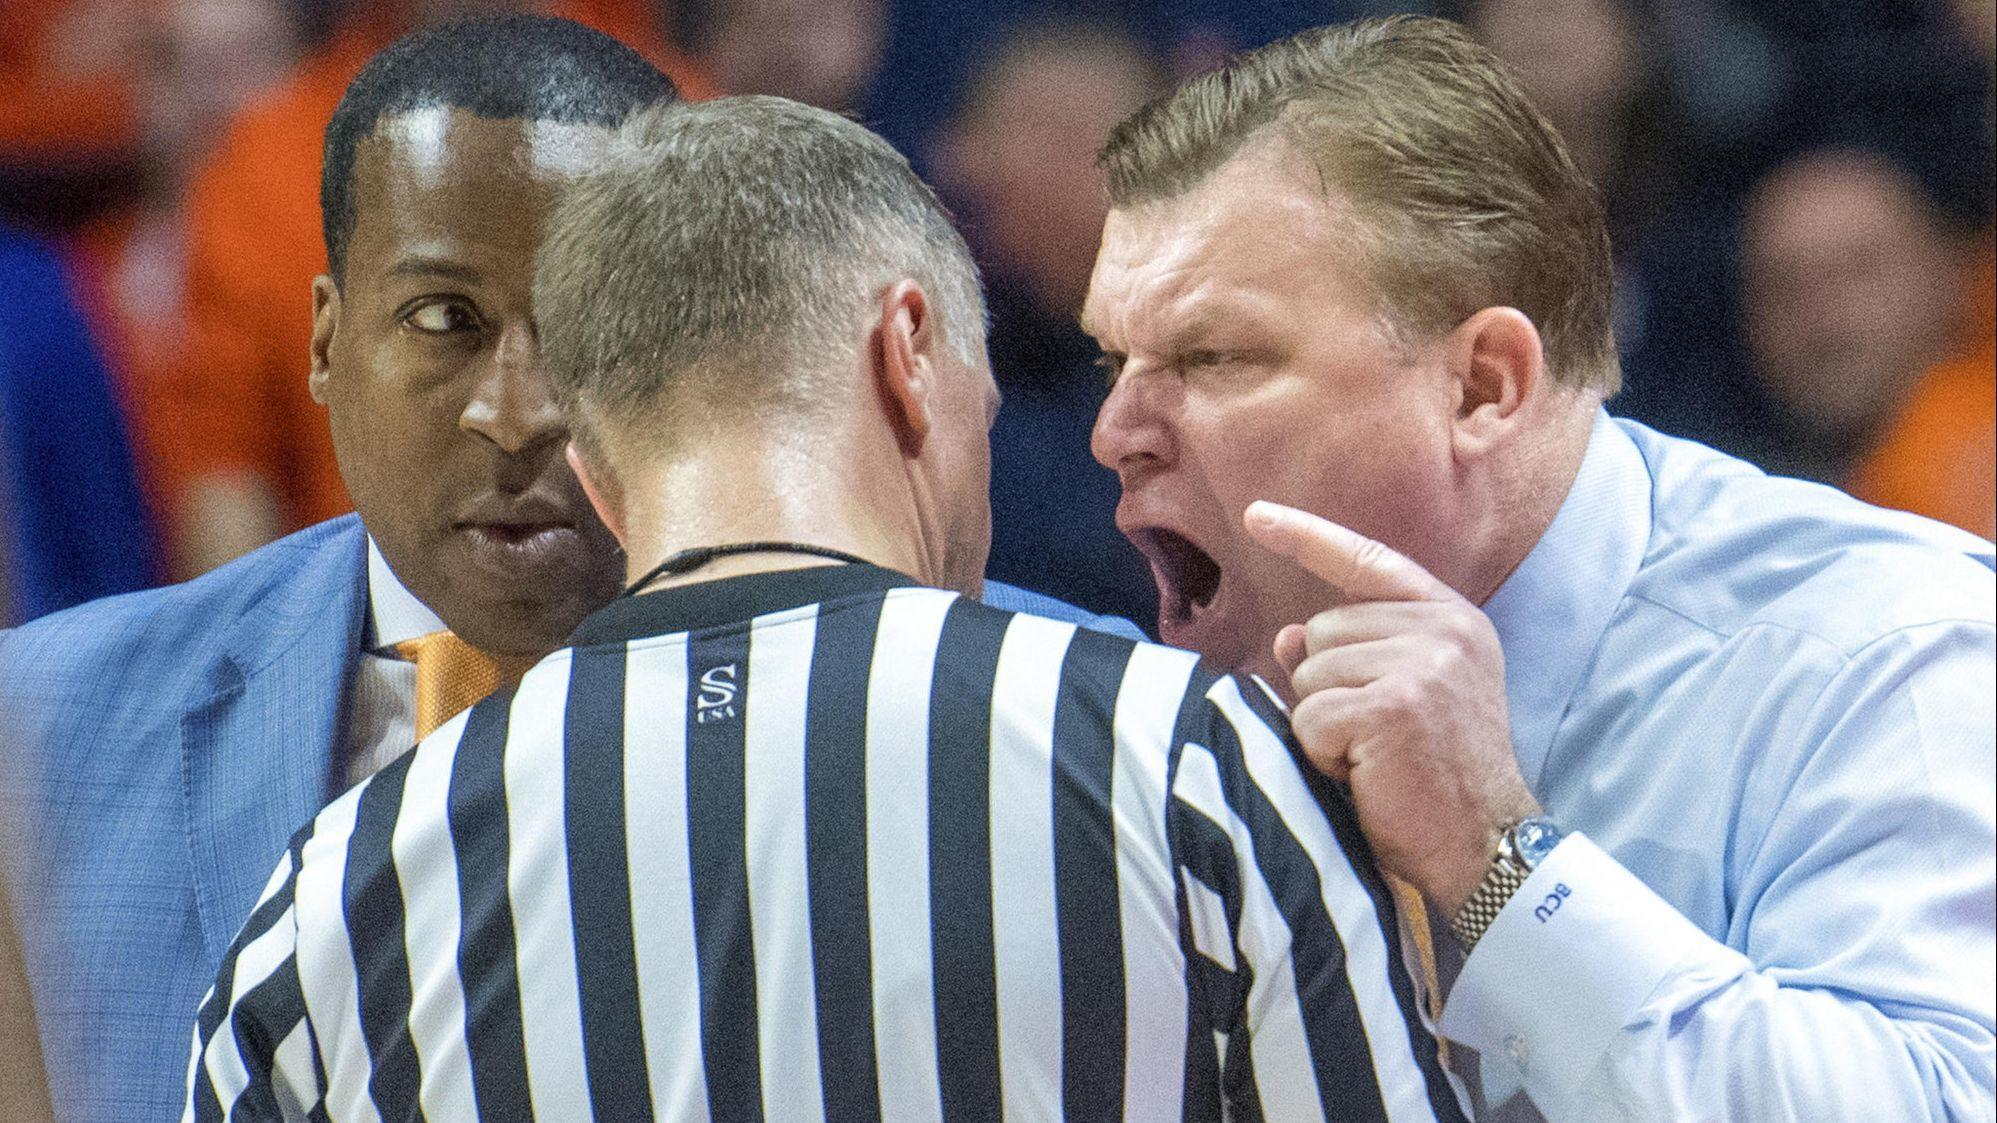 Coach Brad Underwood kick-starts a rally, but Illinois falls to Penn State 83-76